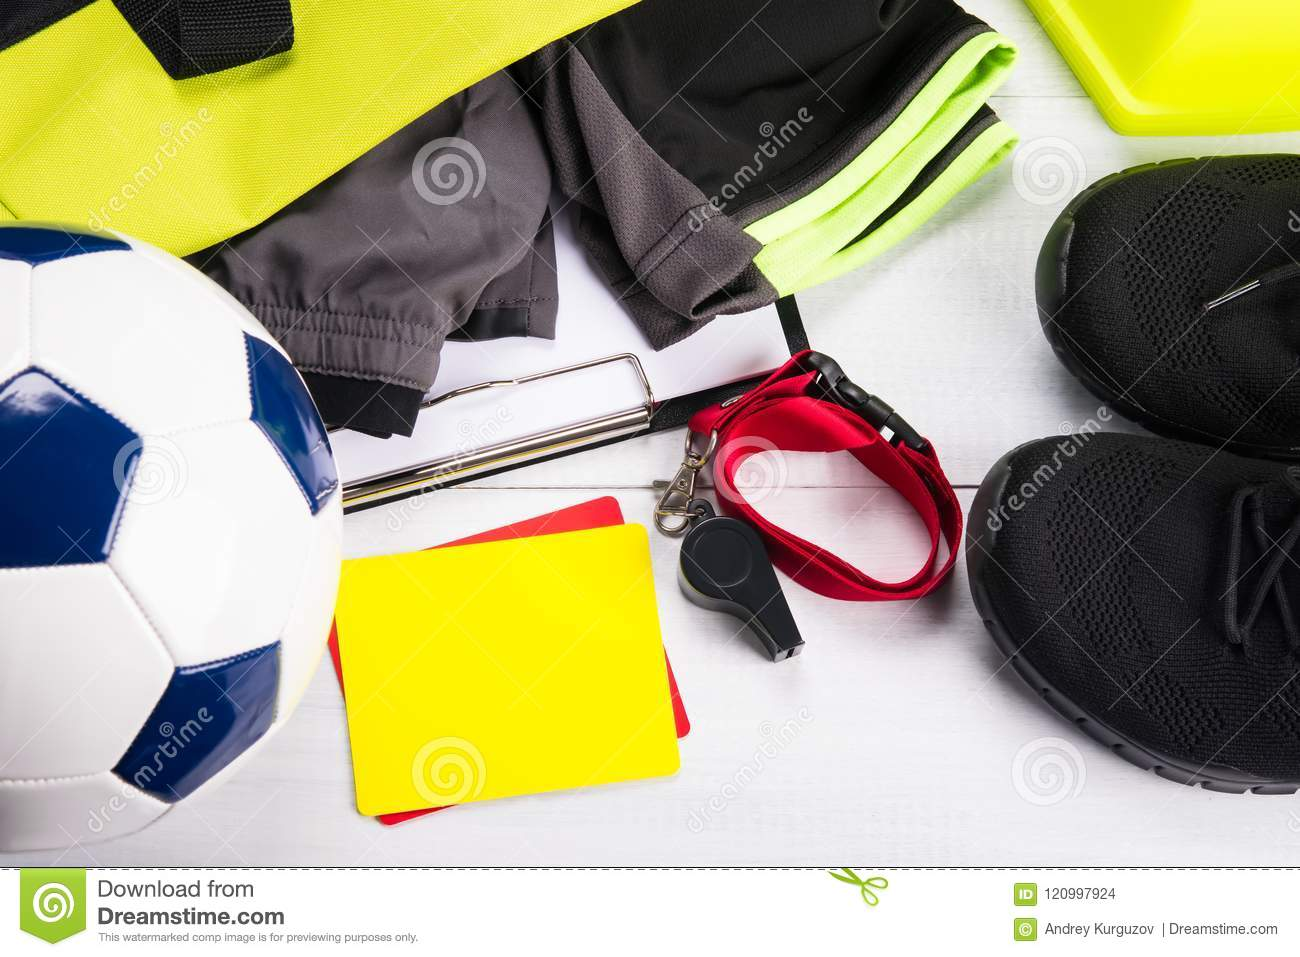 Set of clothes and accessories for the sportsman of the football player on a light background